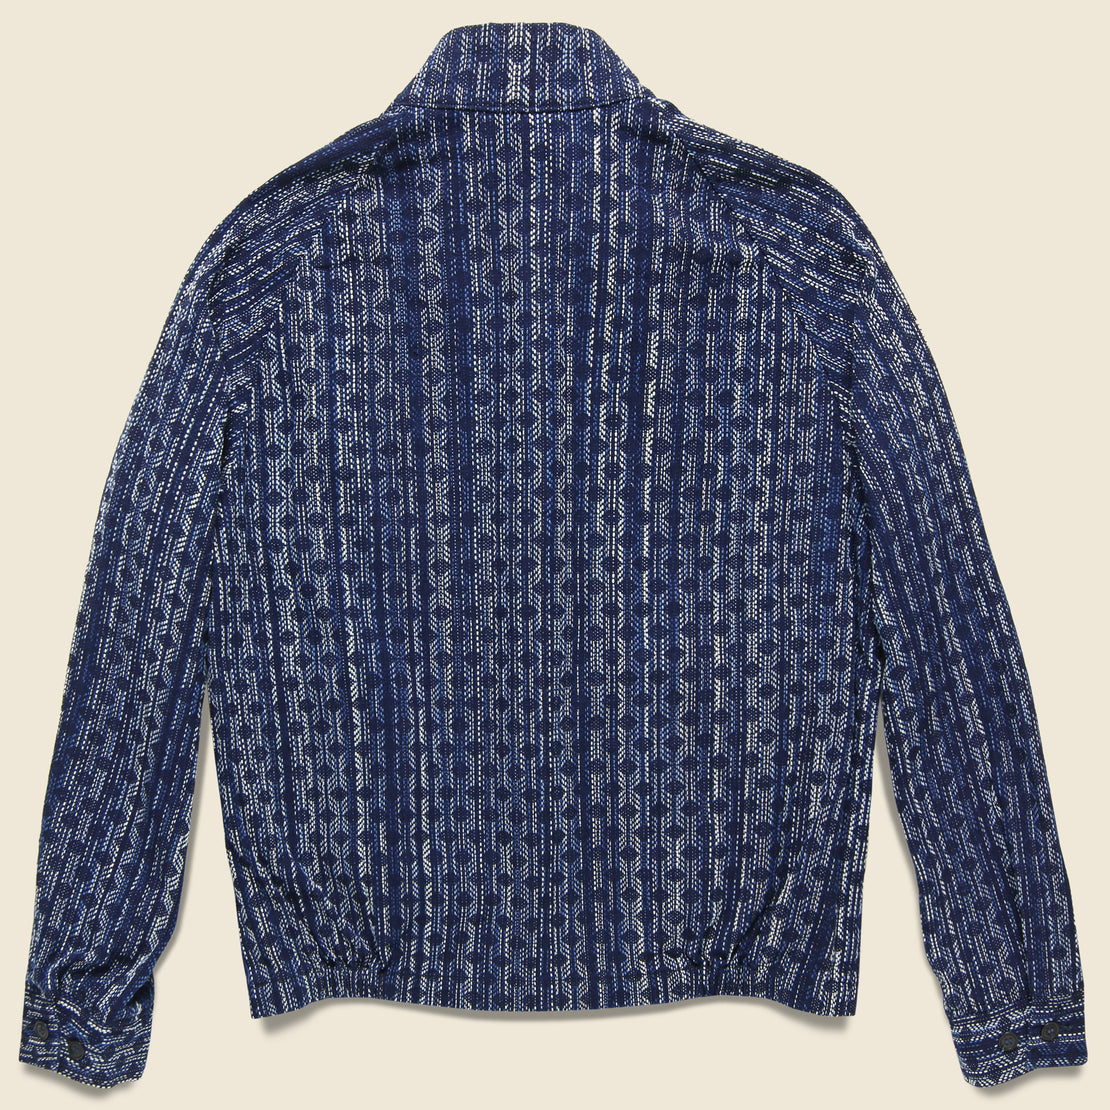 Aizome Splashed Jacket - Indigo